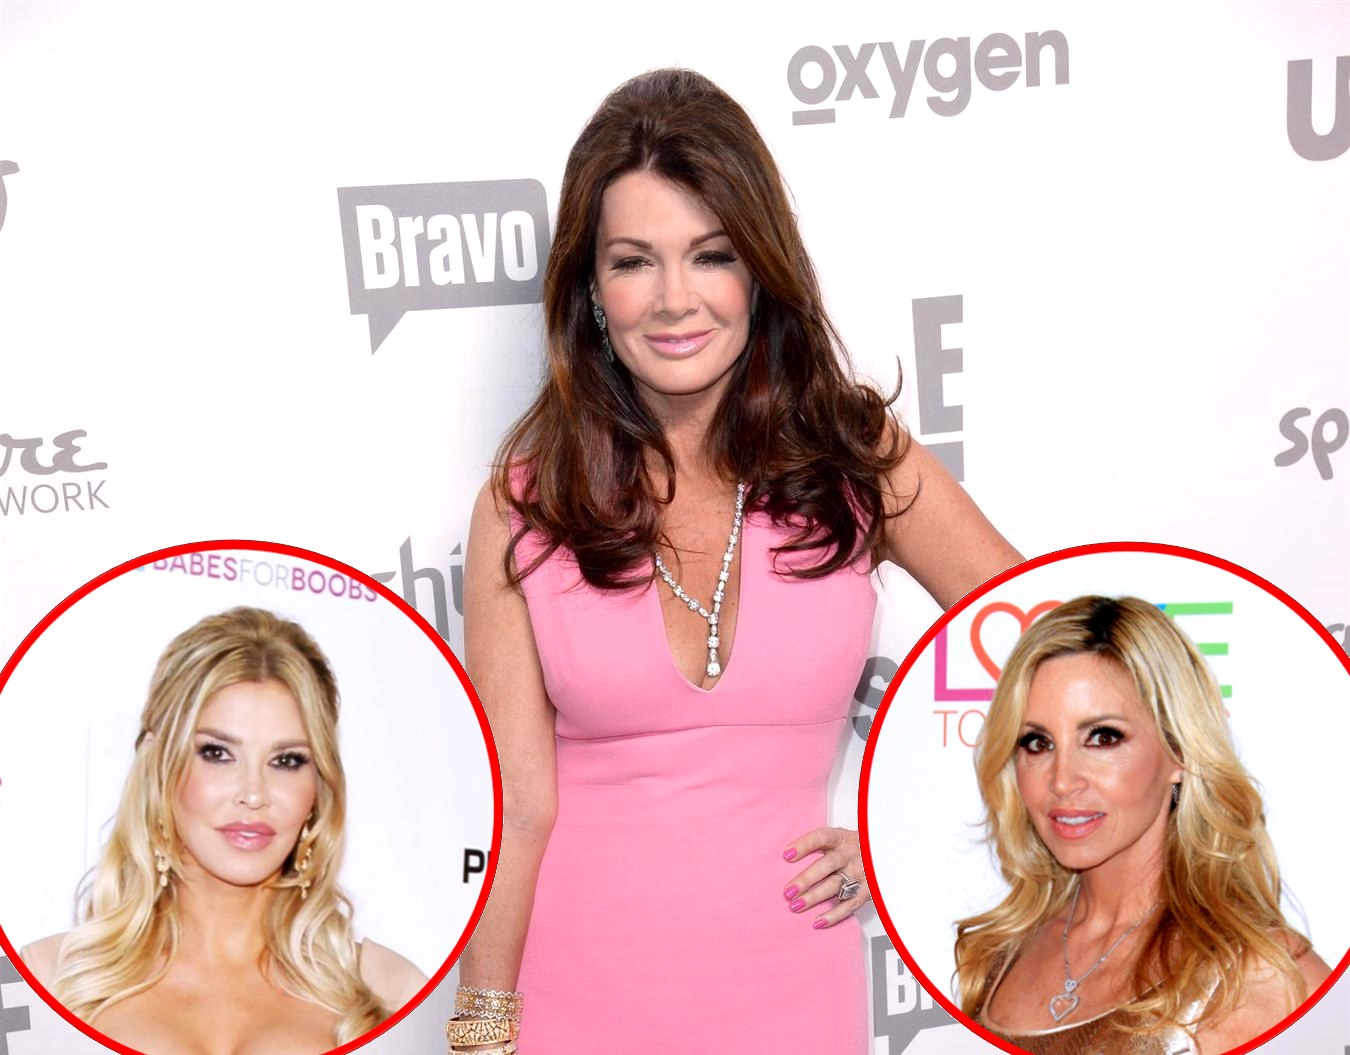 Lisa Vanderpump Fires Back at Brandi Glanville and Reveals Why She Should Join RHOBH Cast, Slams Claim She Gave Camille Grammer Reunion 'Script'